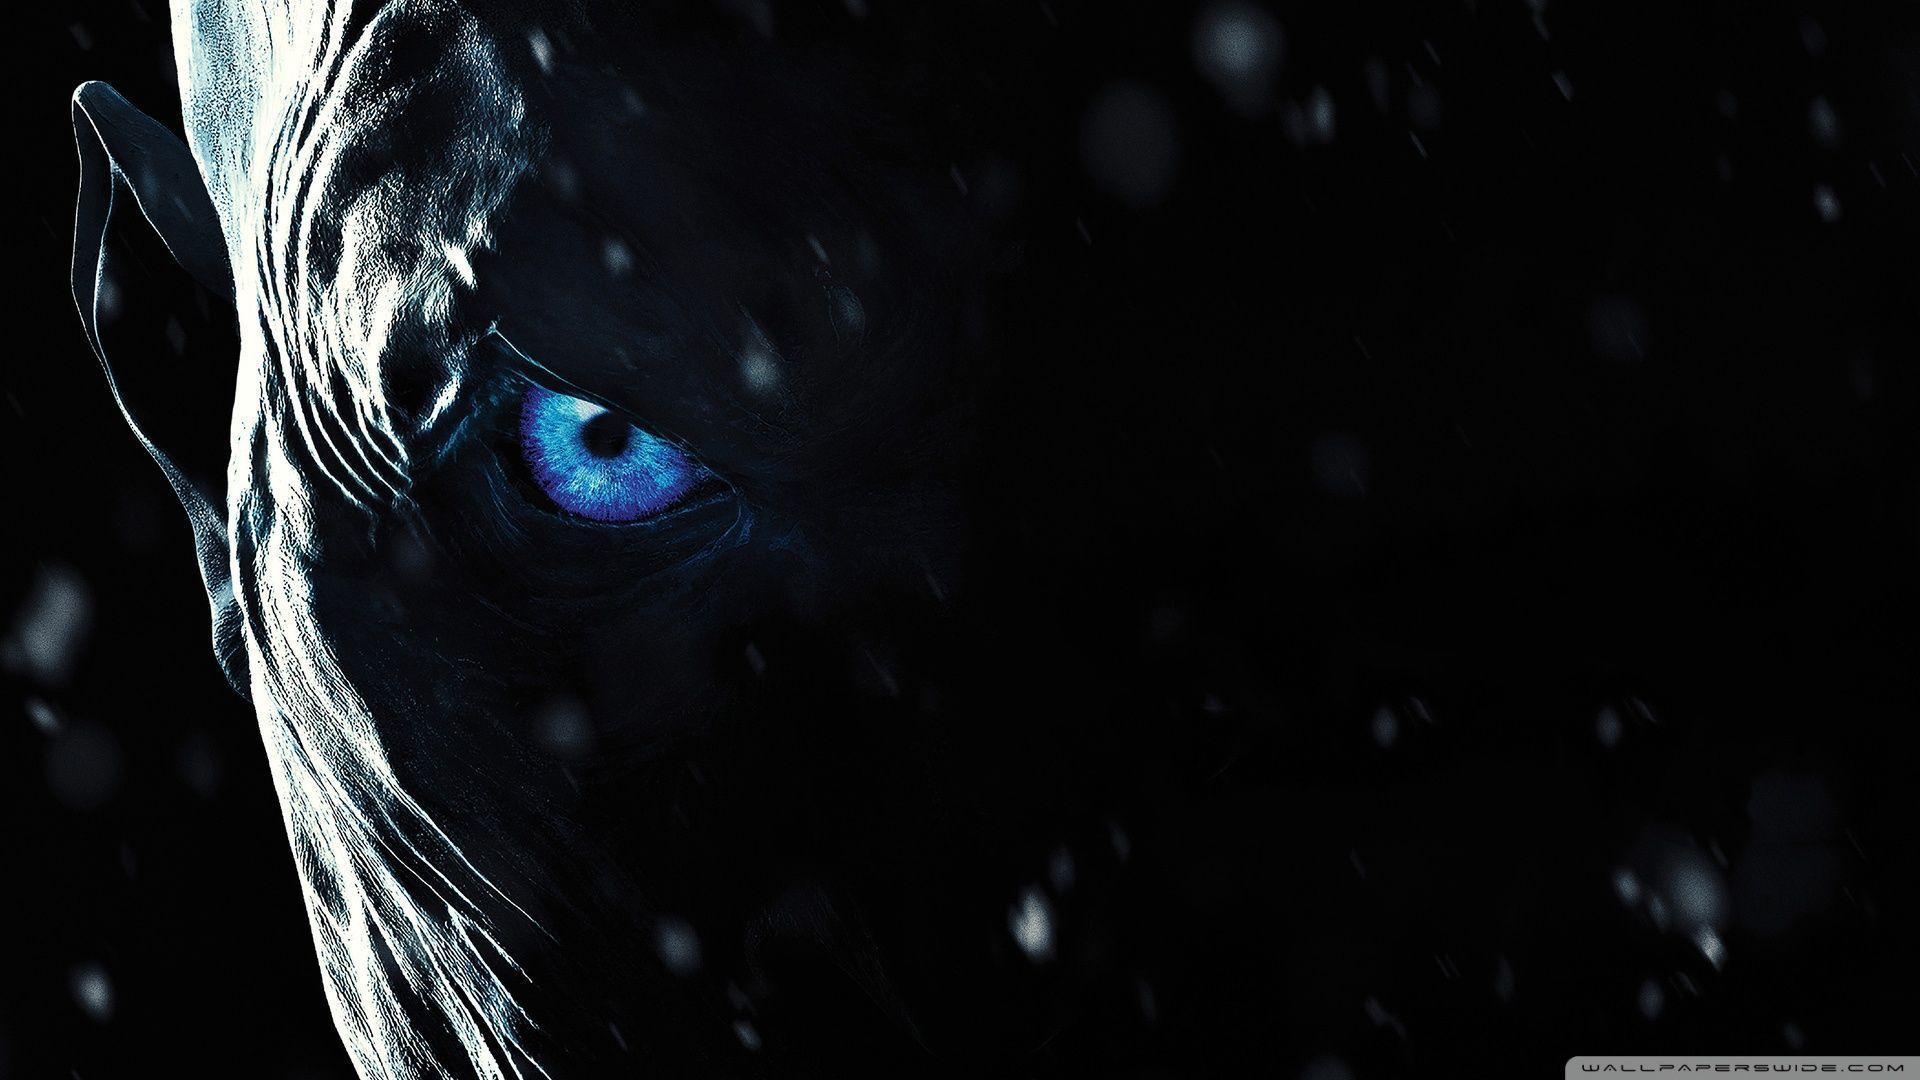 Game Of Thrones Season 7 White Walkers HD desktop wallpapers